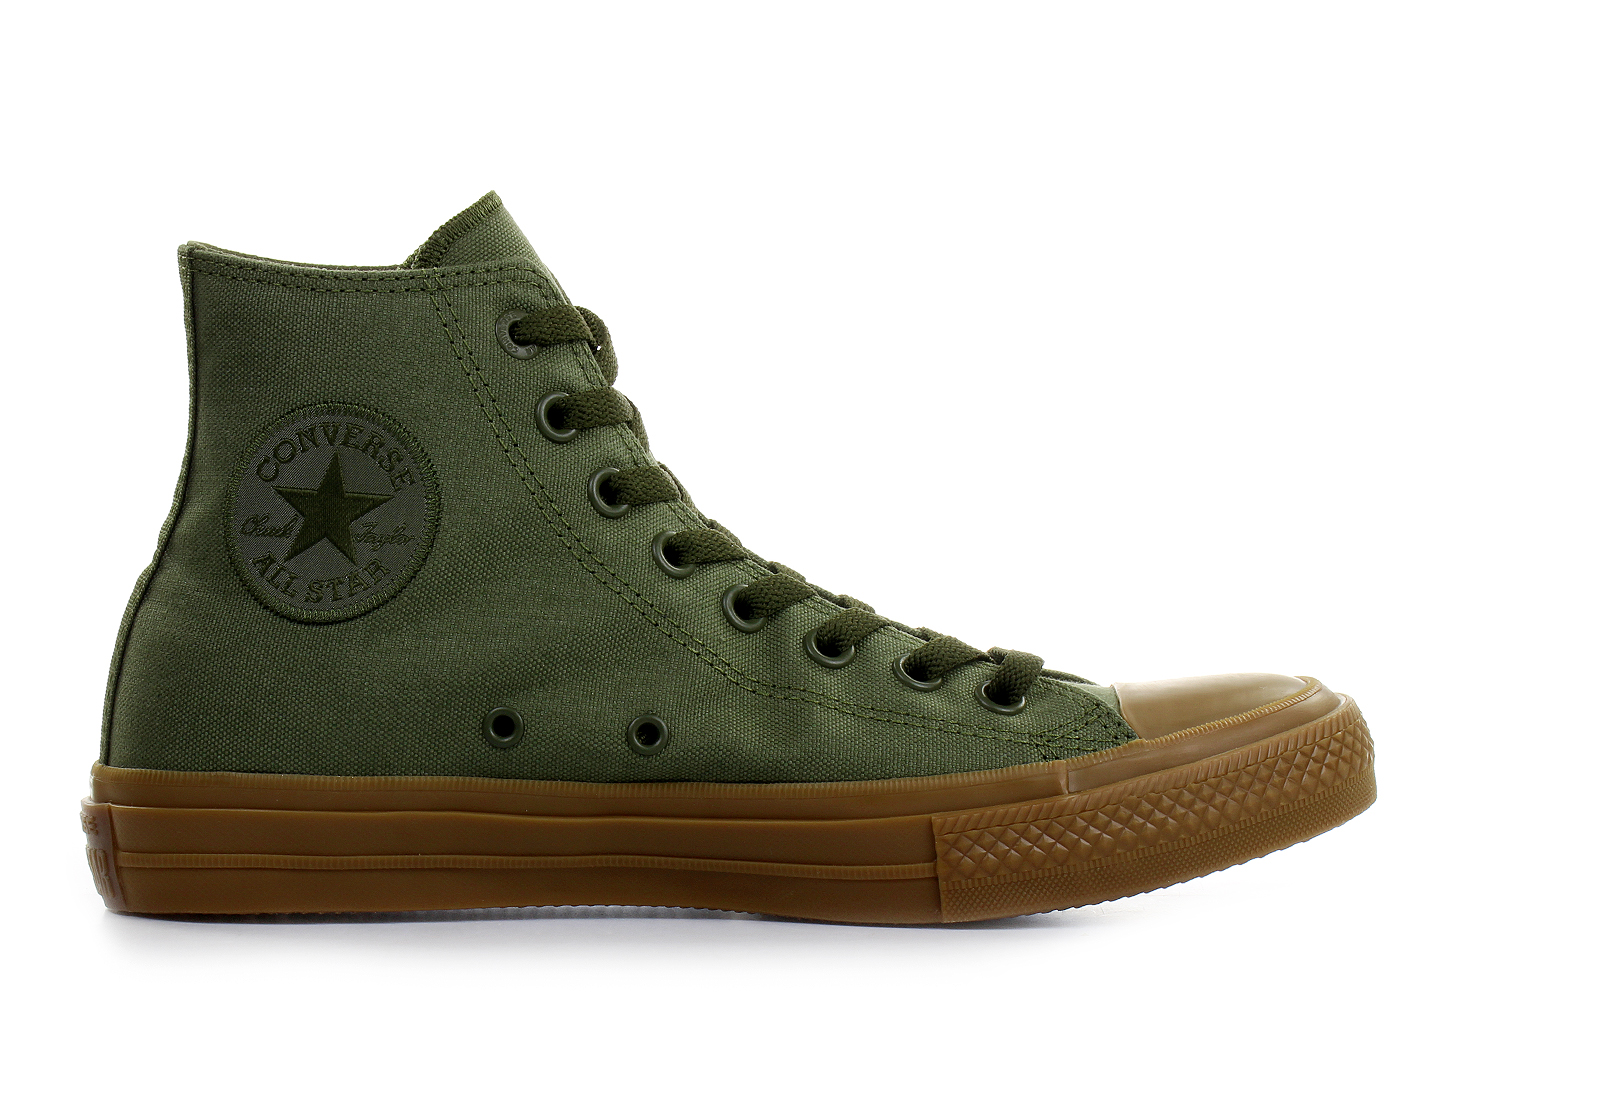 Chuck Taylor All Star II Gumsole Hi